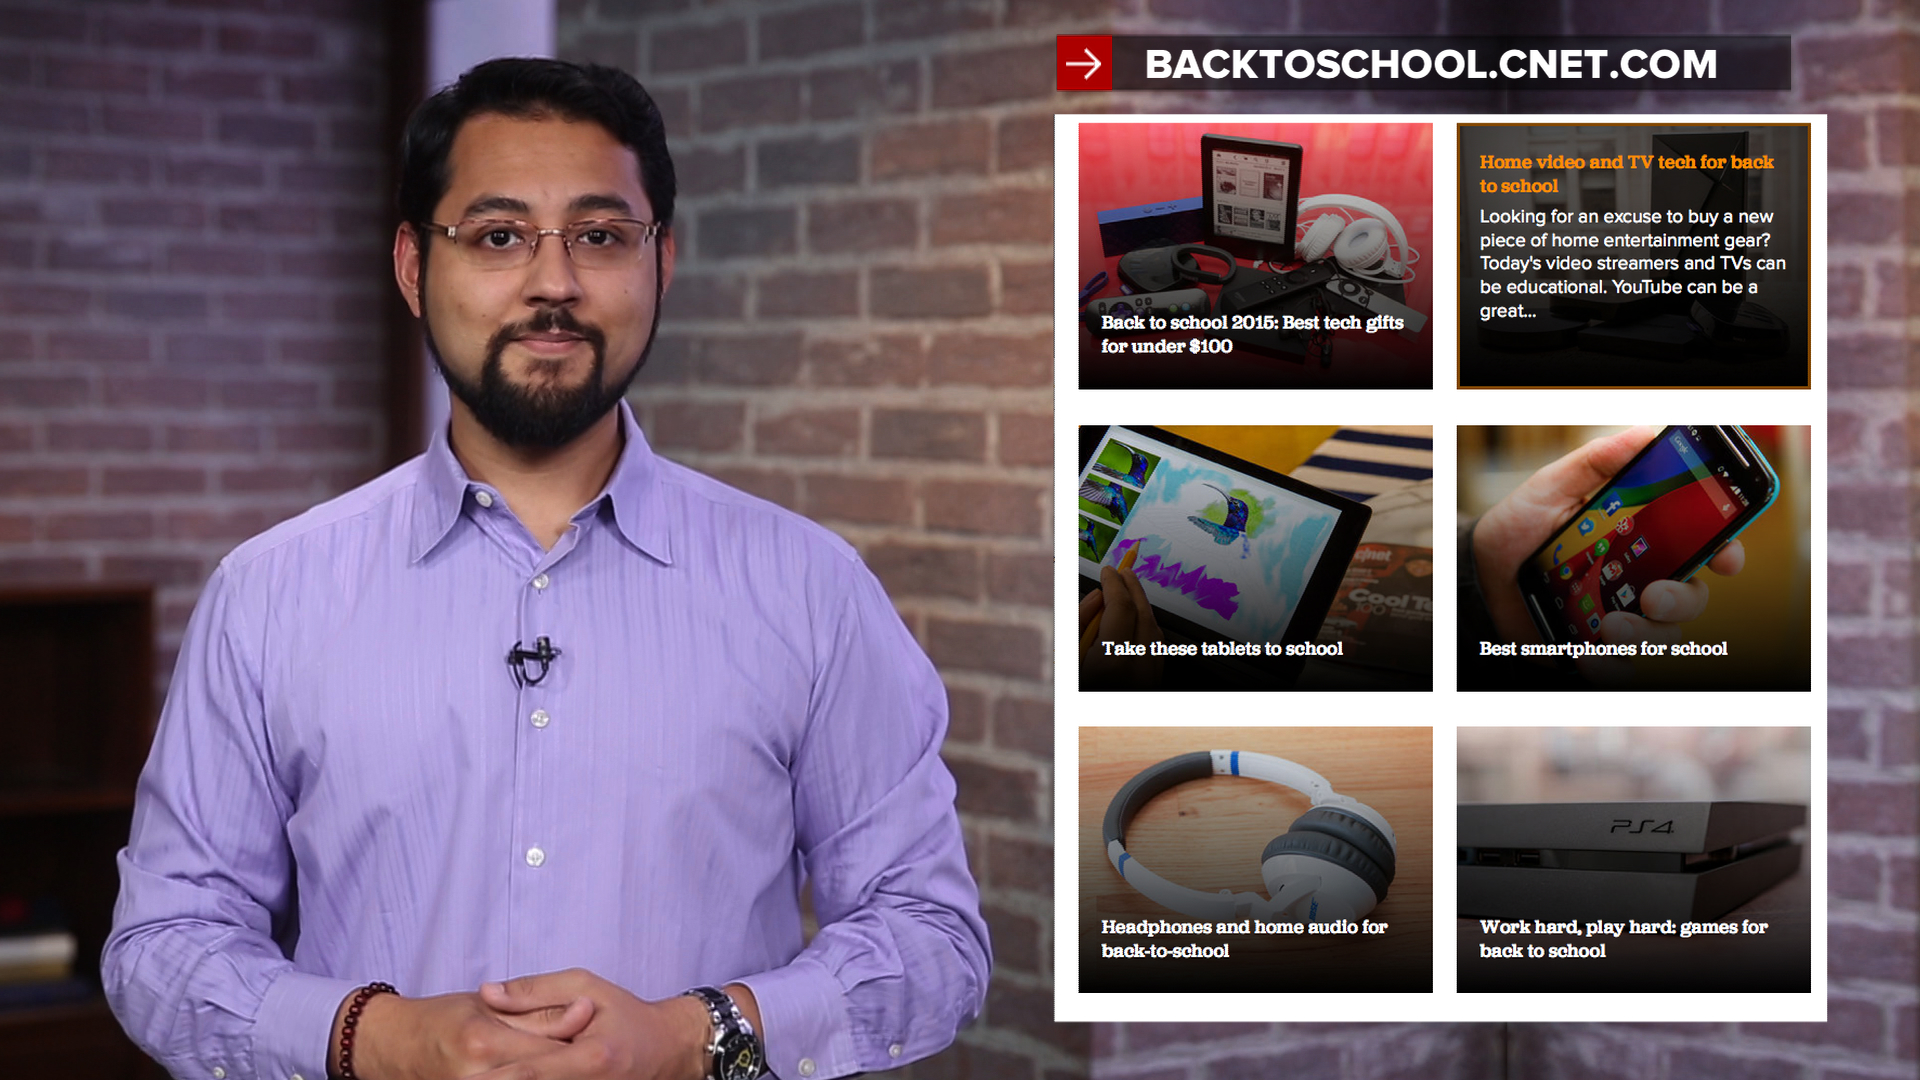 Video: Top 5 back to school gifts